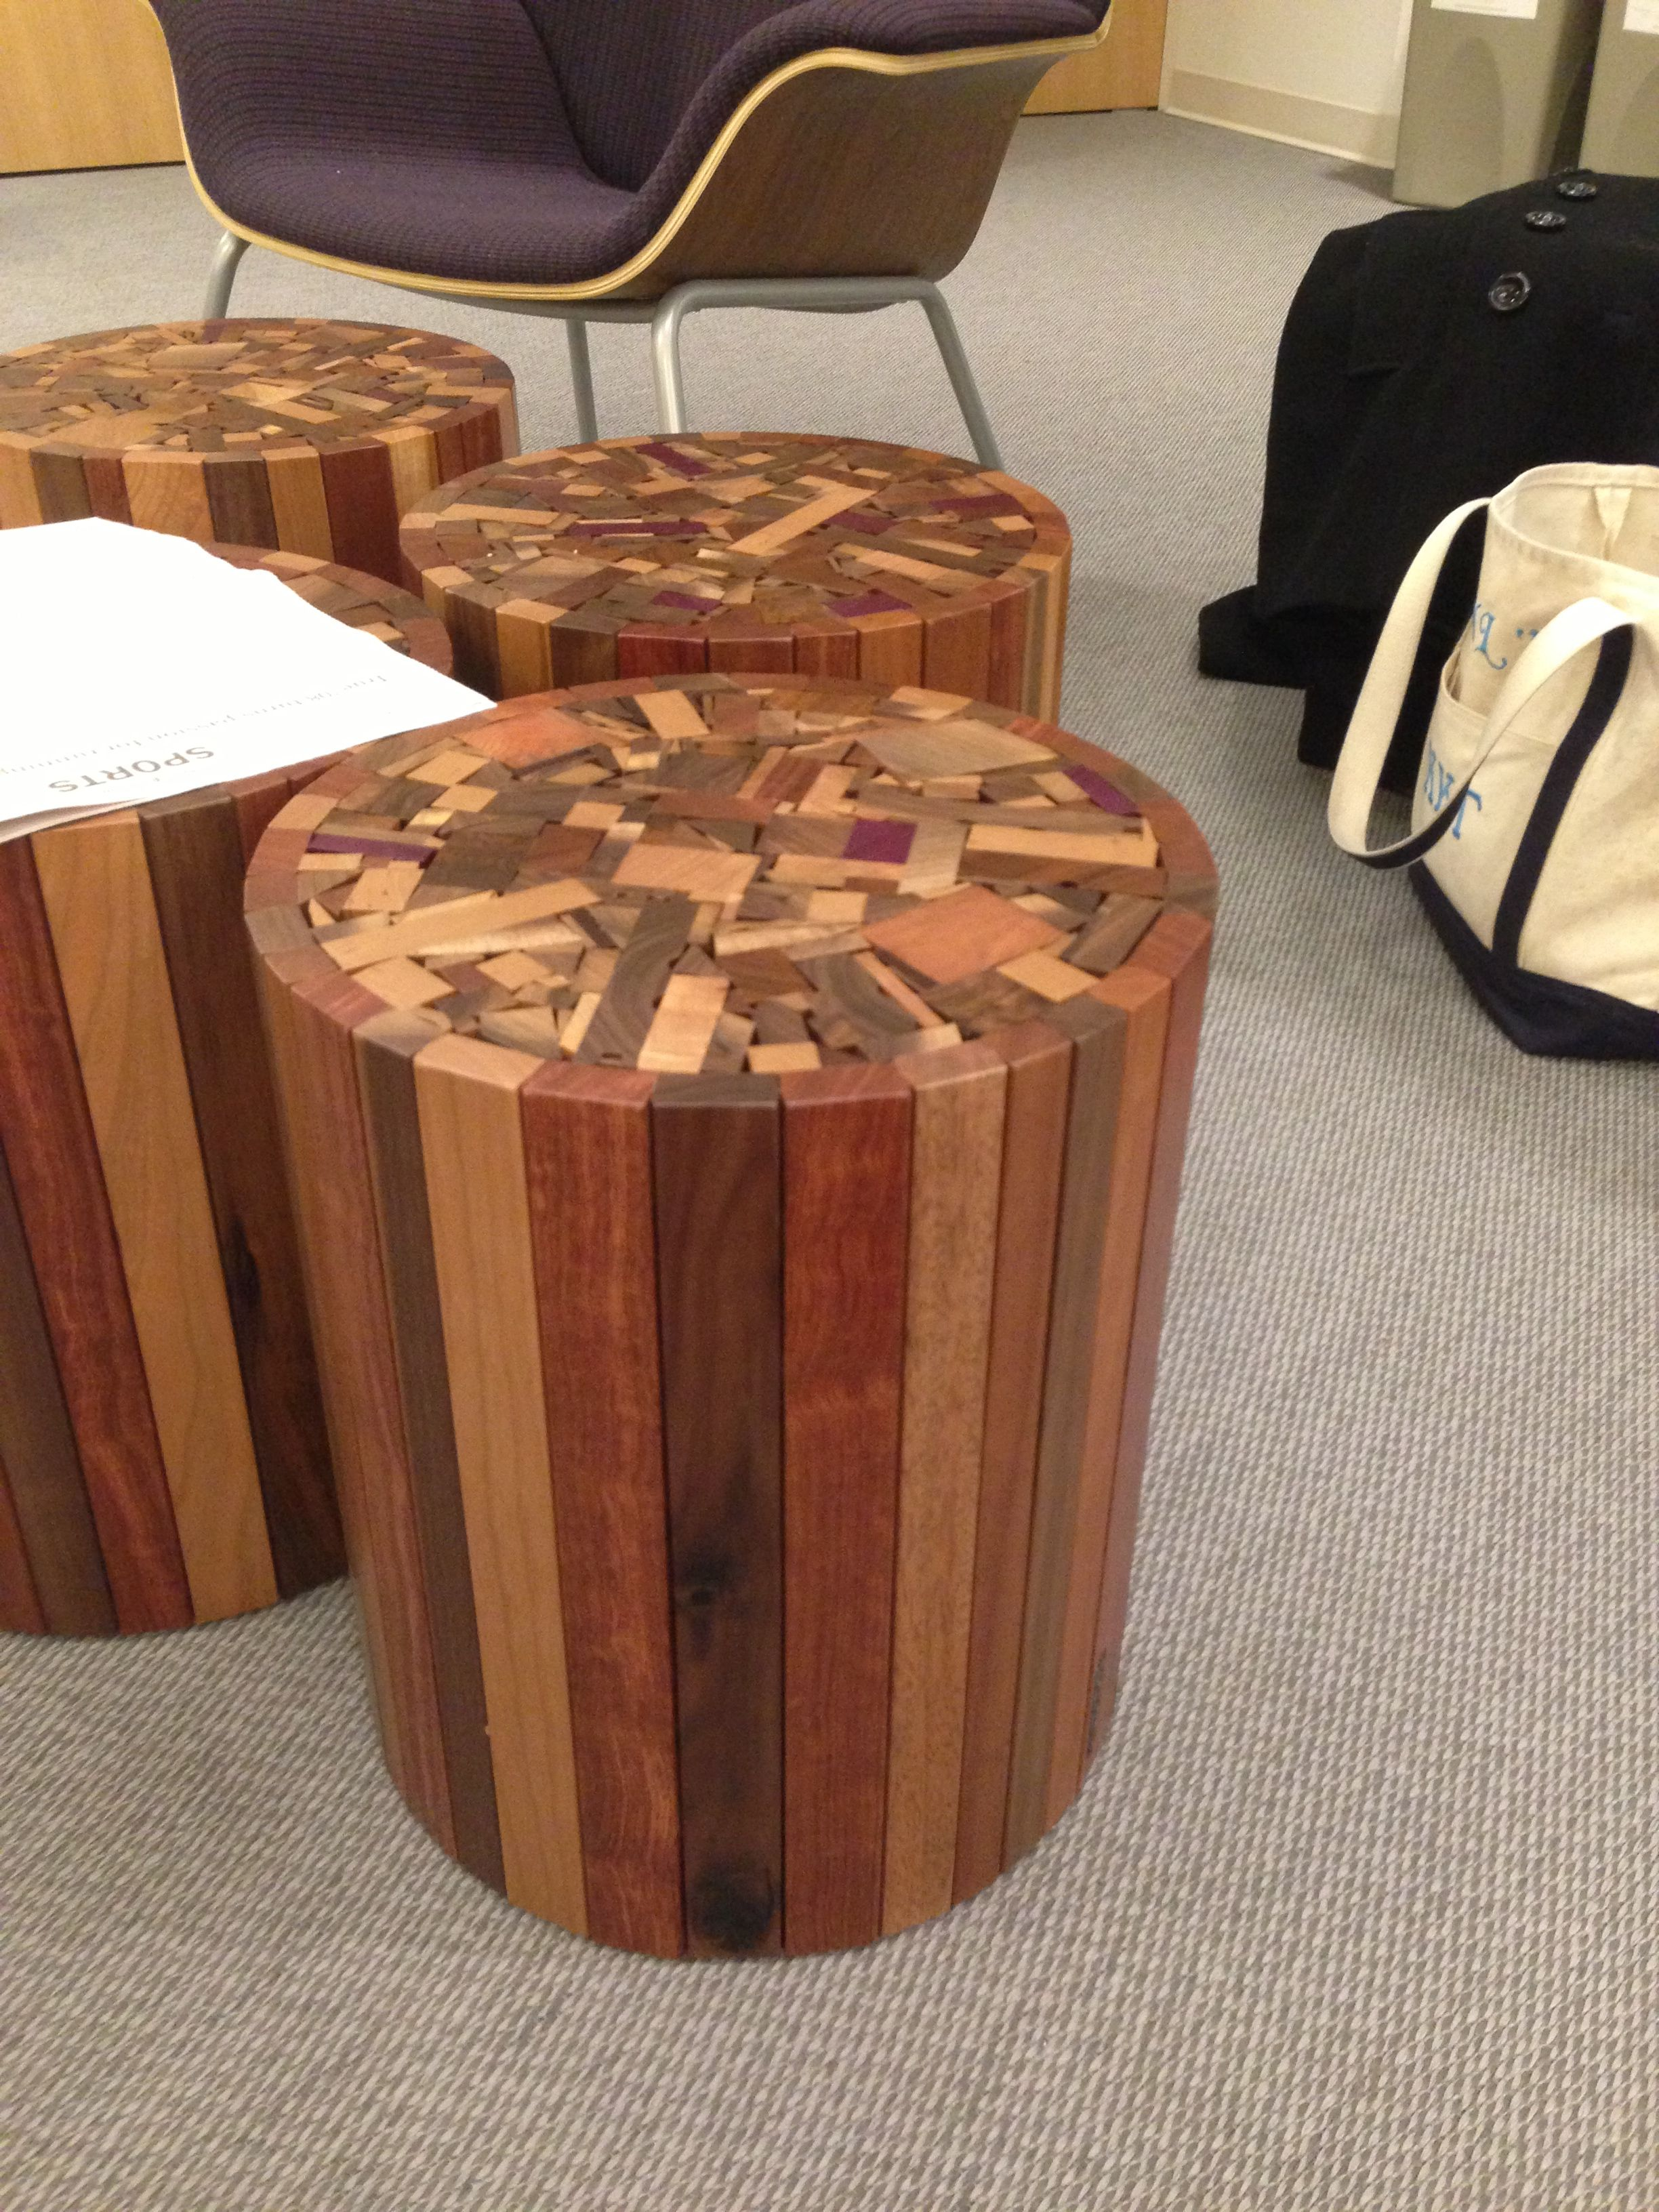 Cool Side Table Woodshop Project For The Future Derevyannye